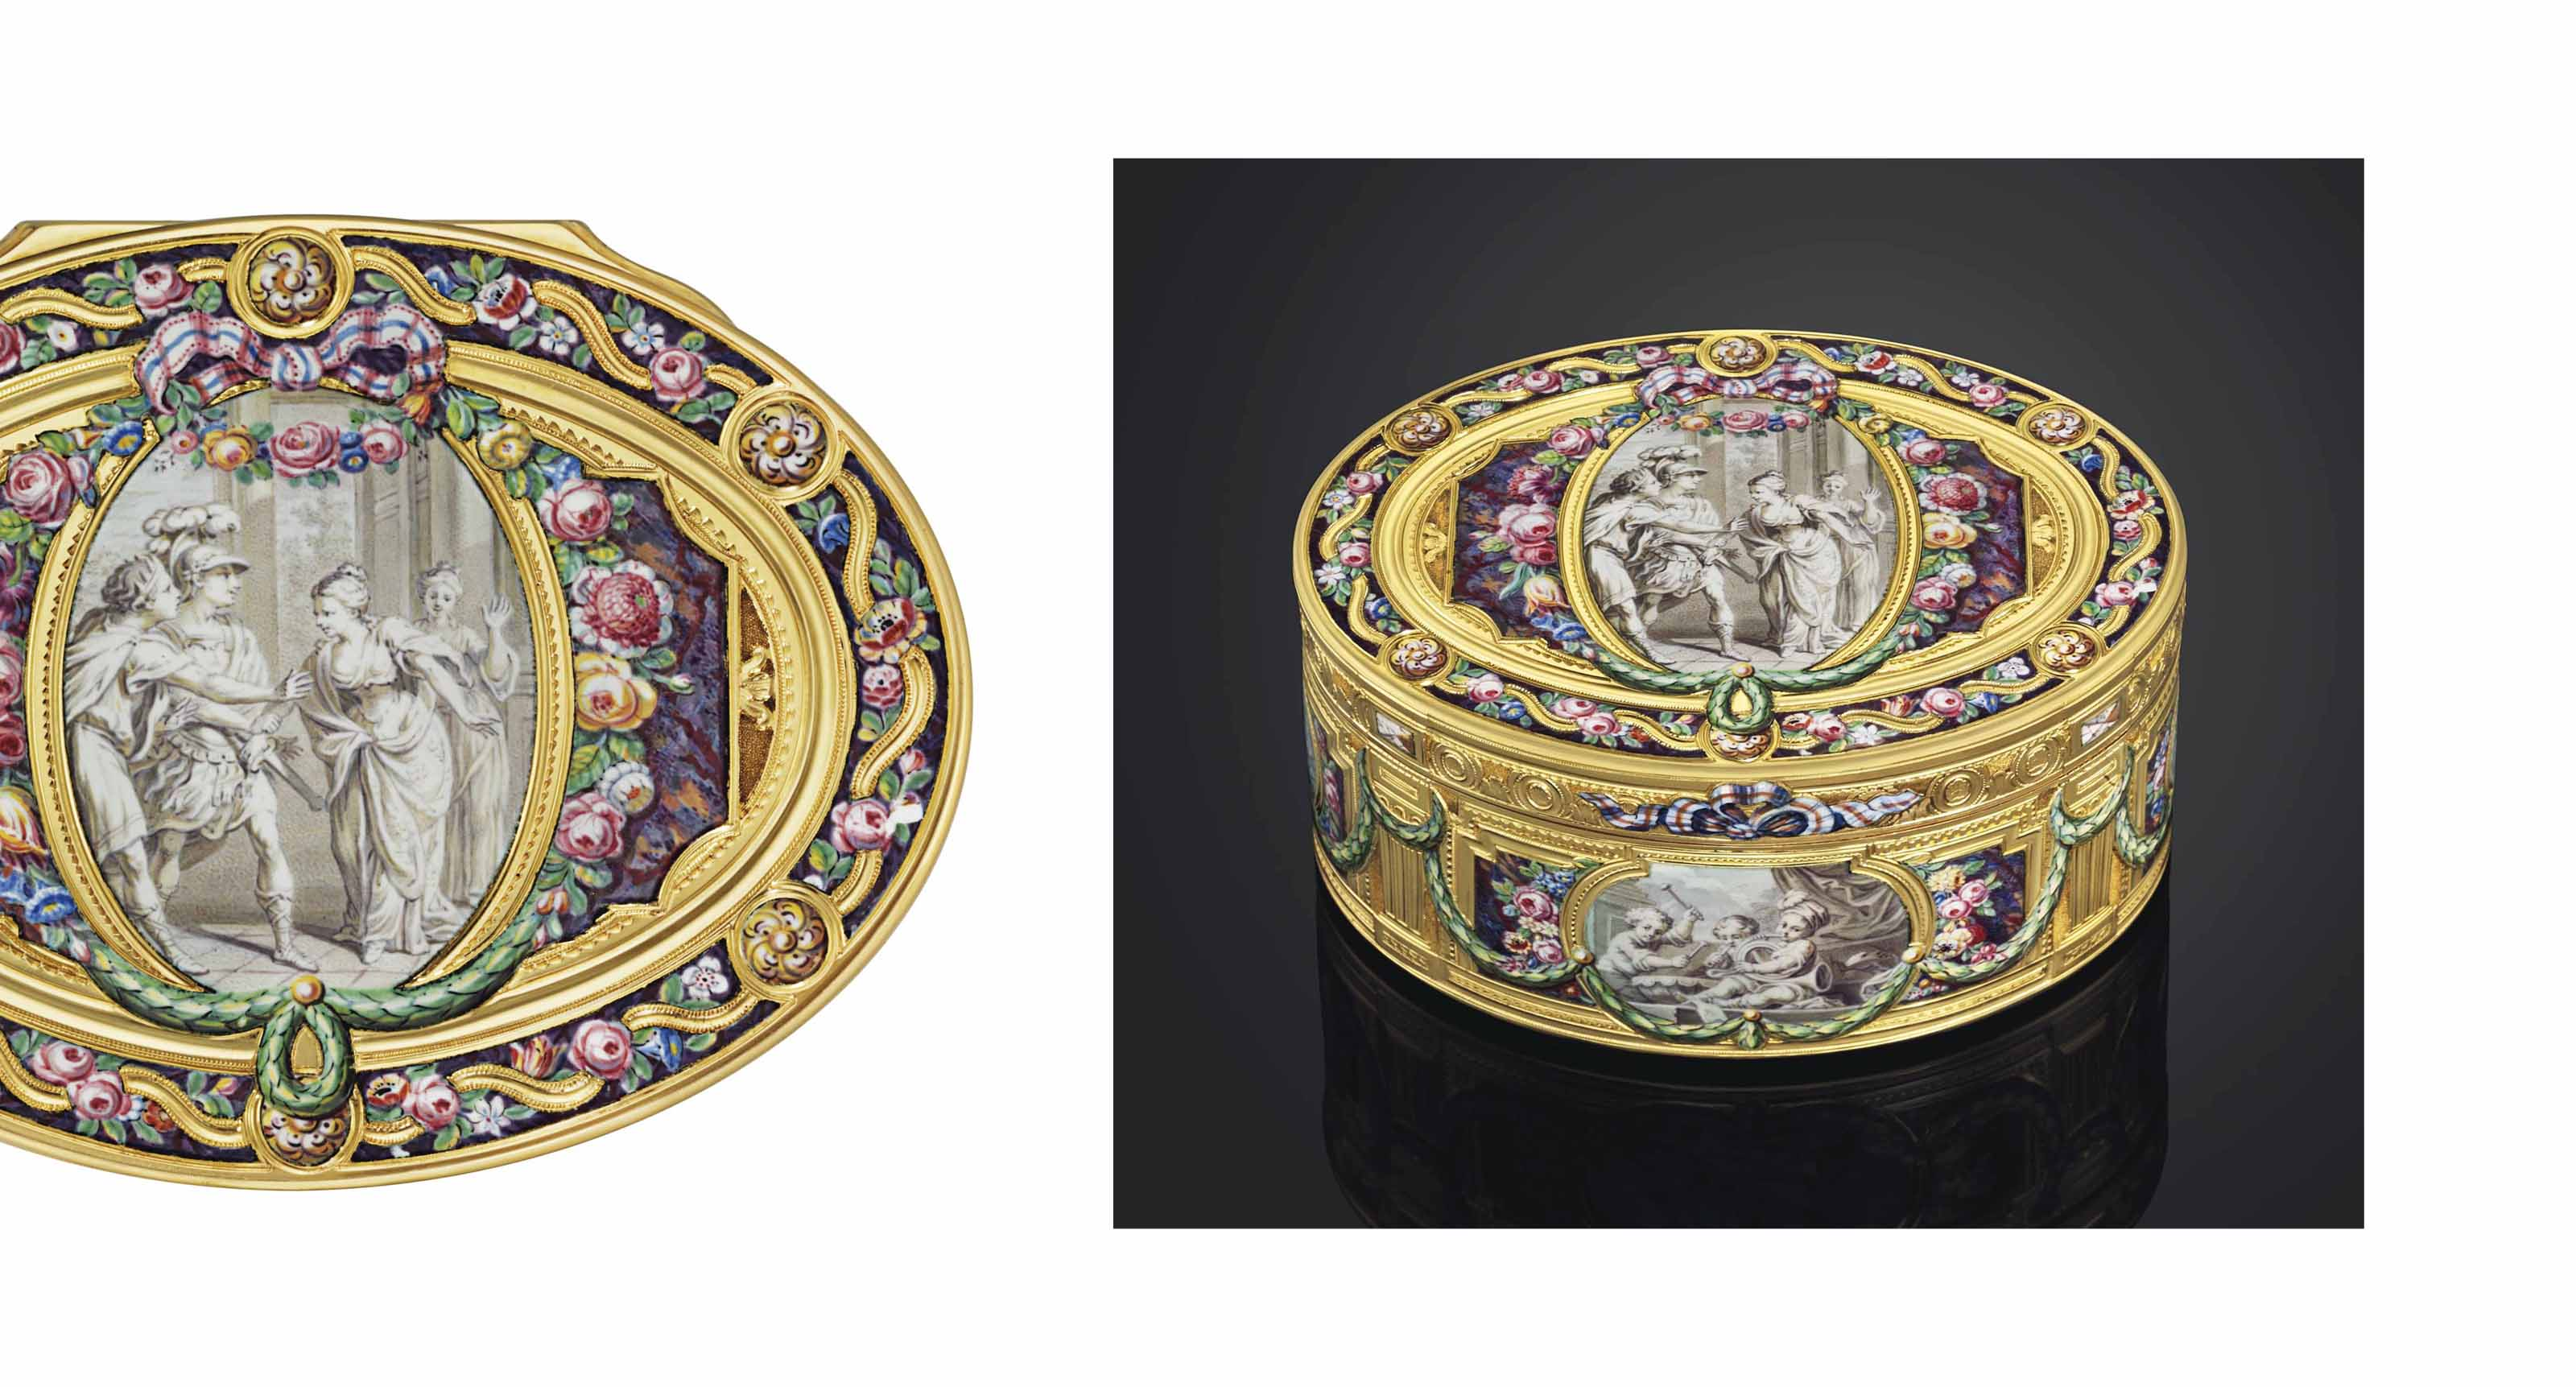 A HIGHLY IMPORTANT LOUIS XV ENAMELLED GOLD SNUFF-BOX